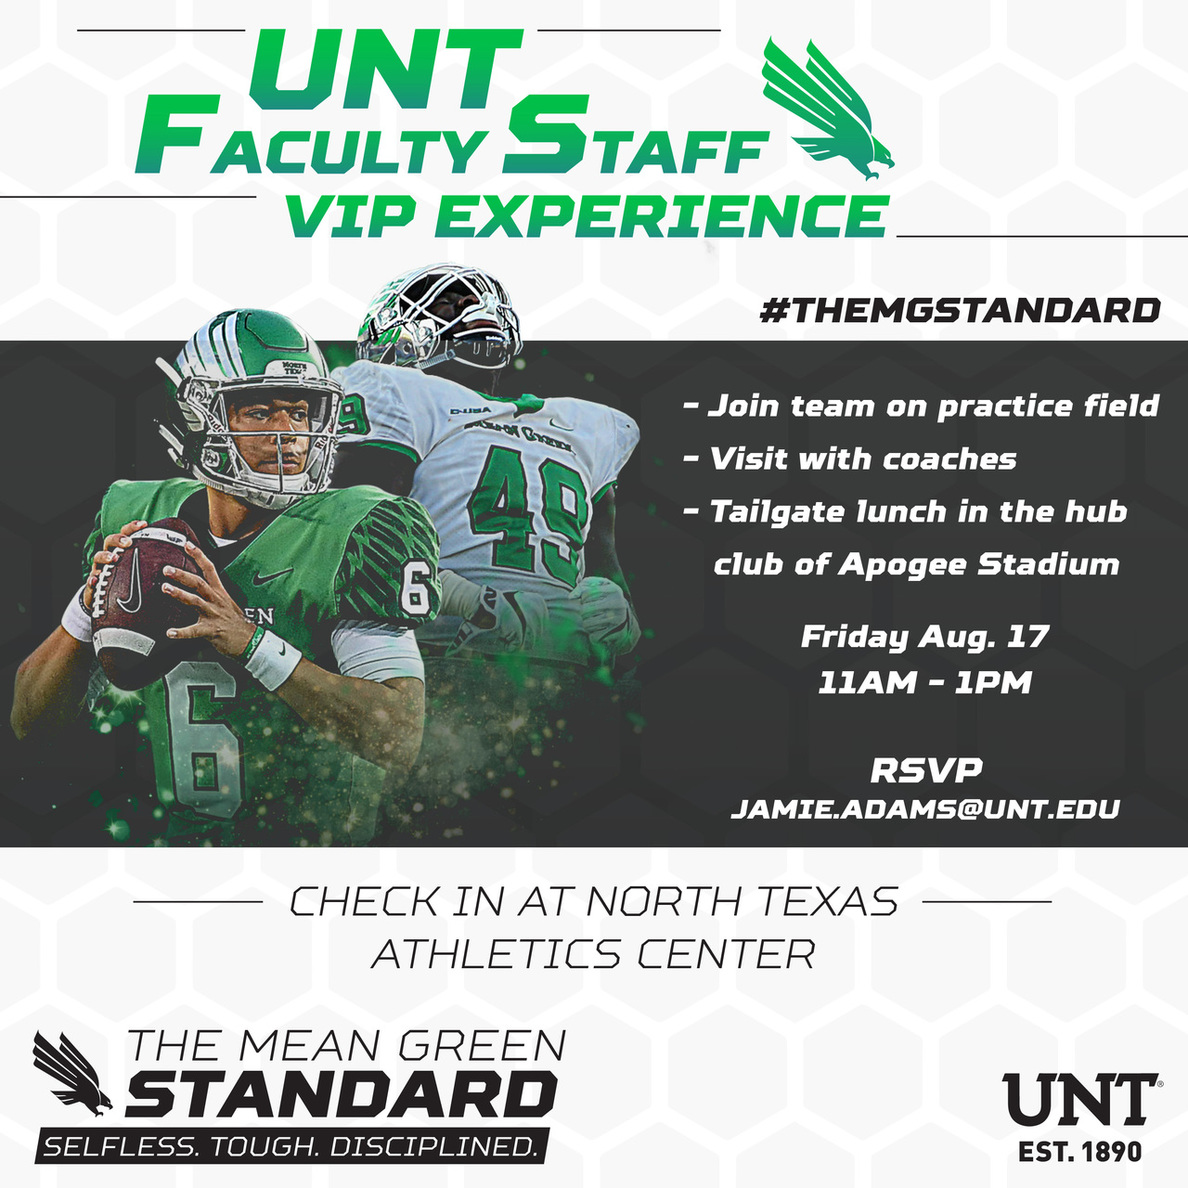 Athletics offering VIP Experience Aug. 17